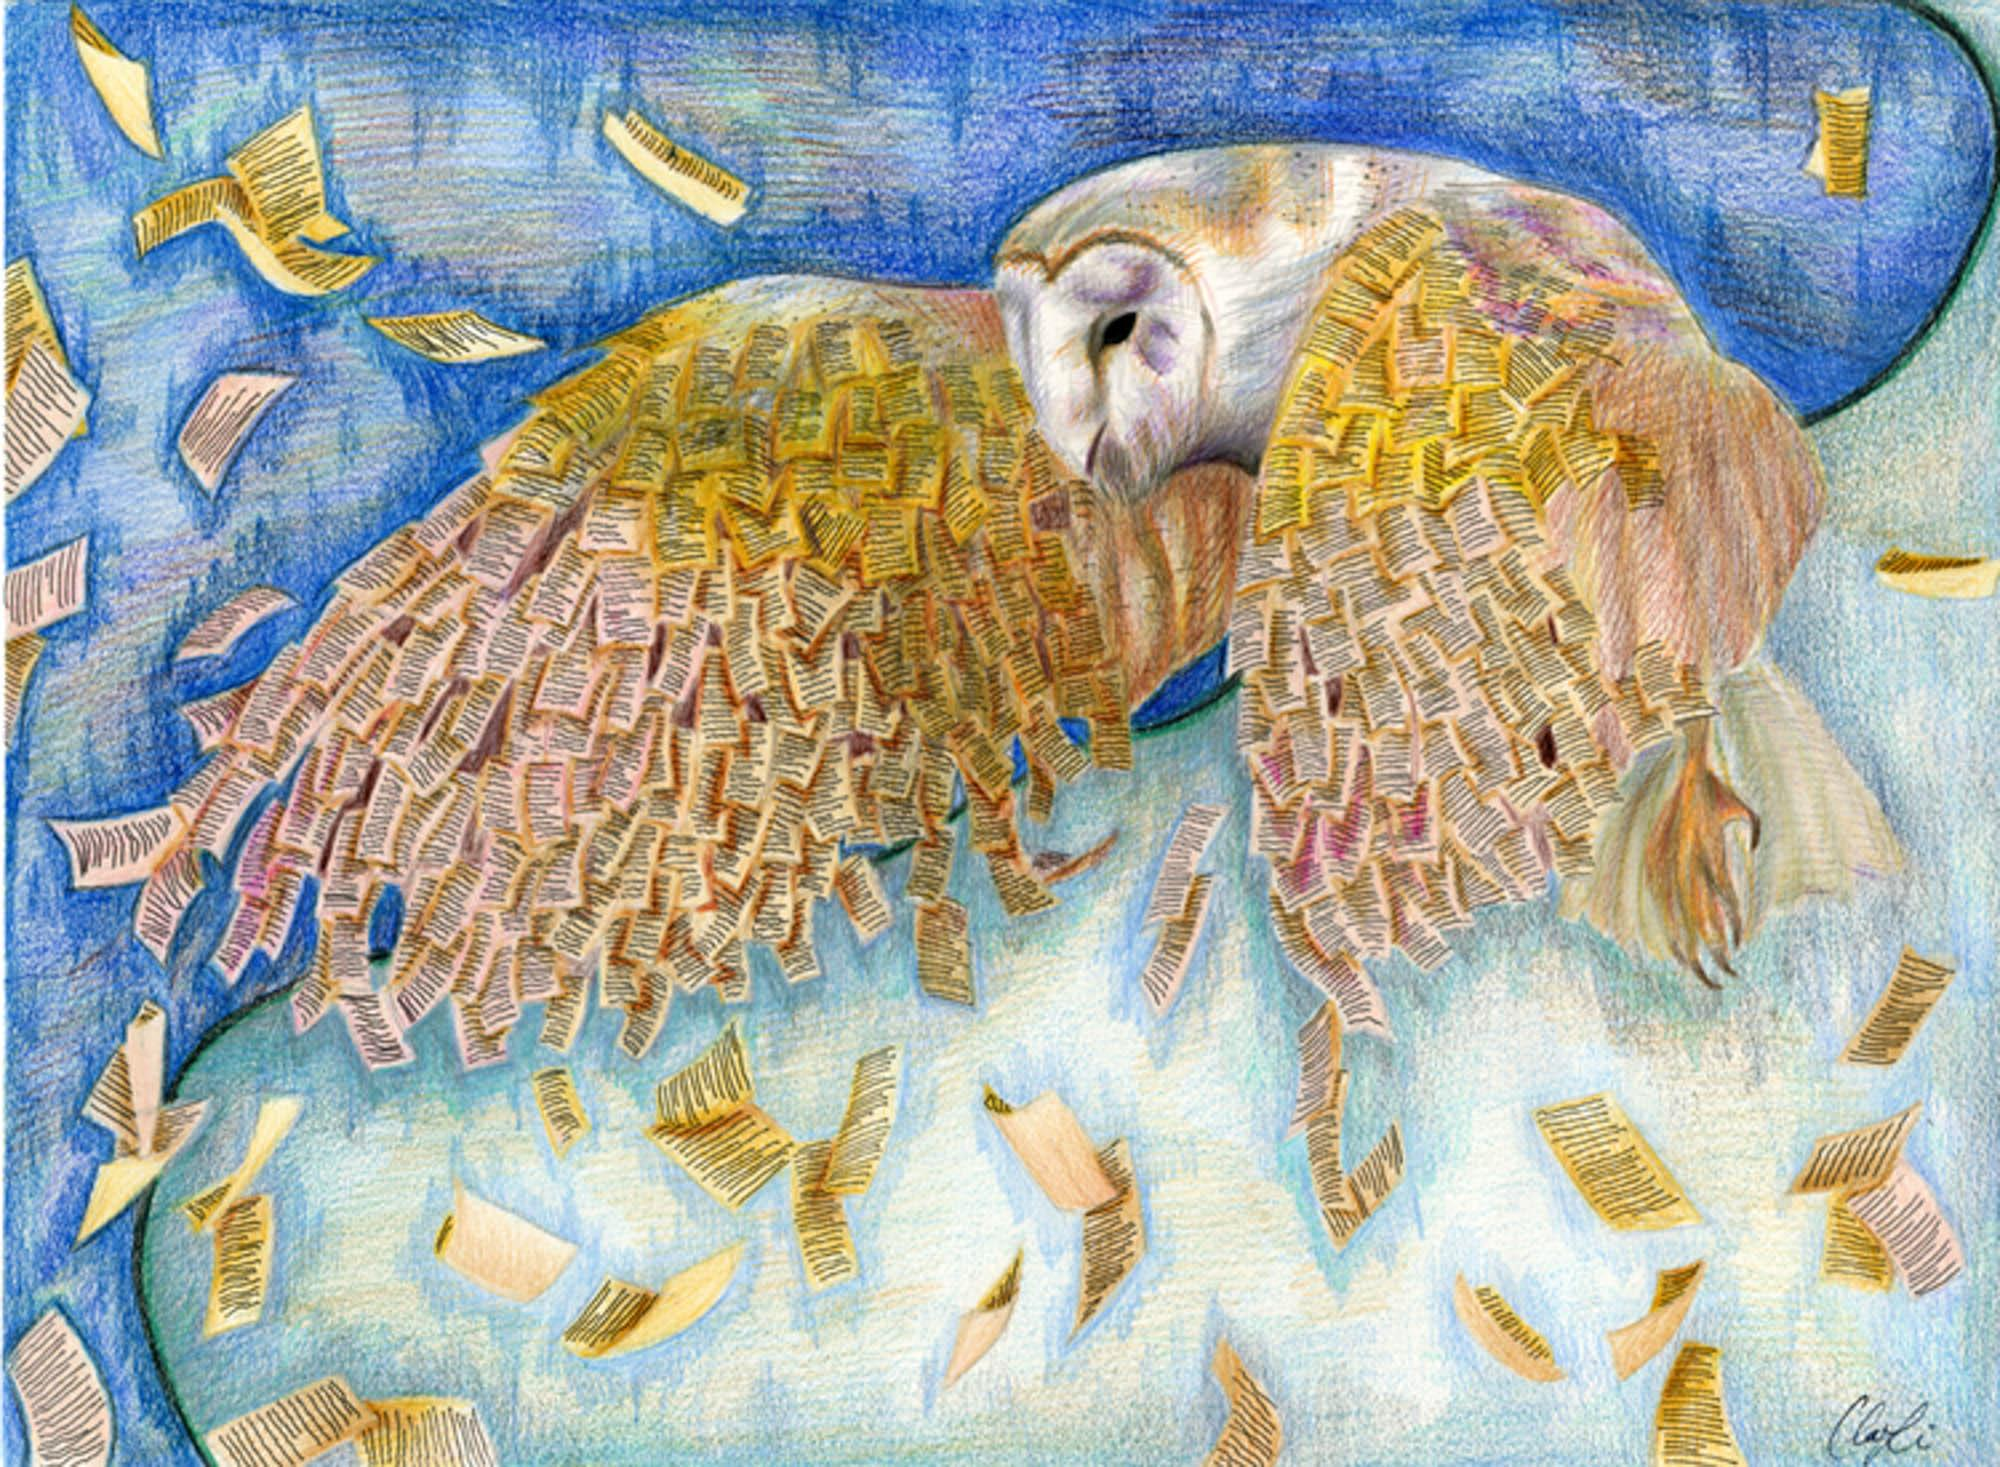 Wisdom Soars, Claudia Li, age 16 Santa Clara, California (Submitted Independently), 2013 River of Words Art Grand Prize Winner, Category IV